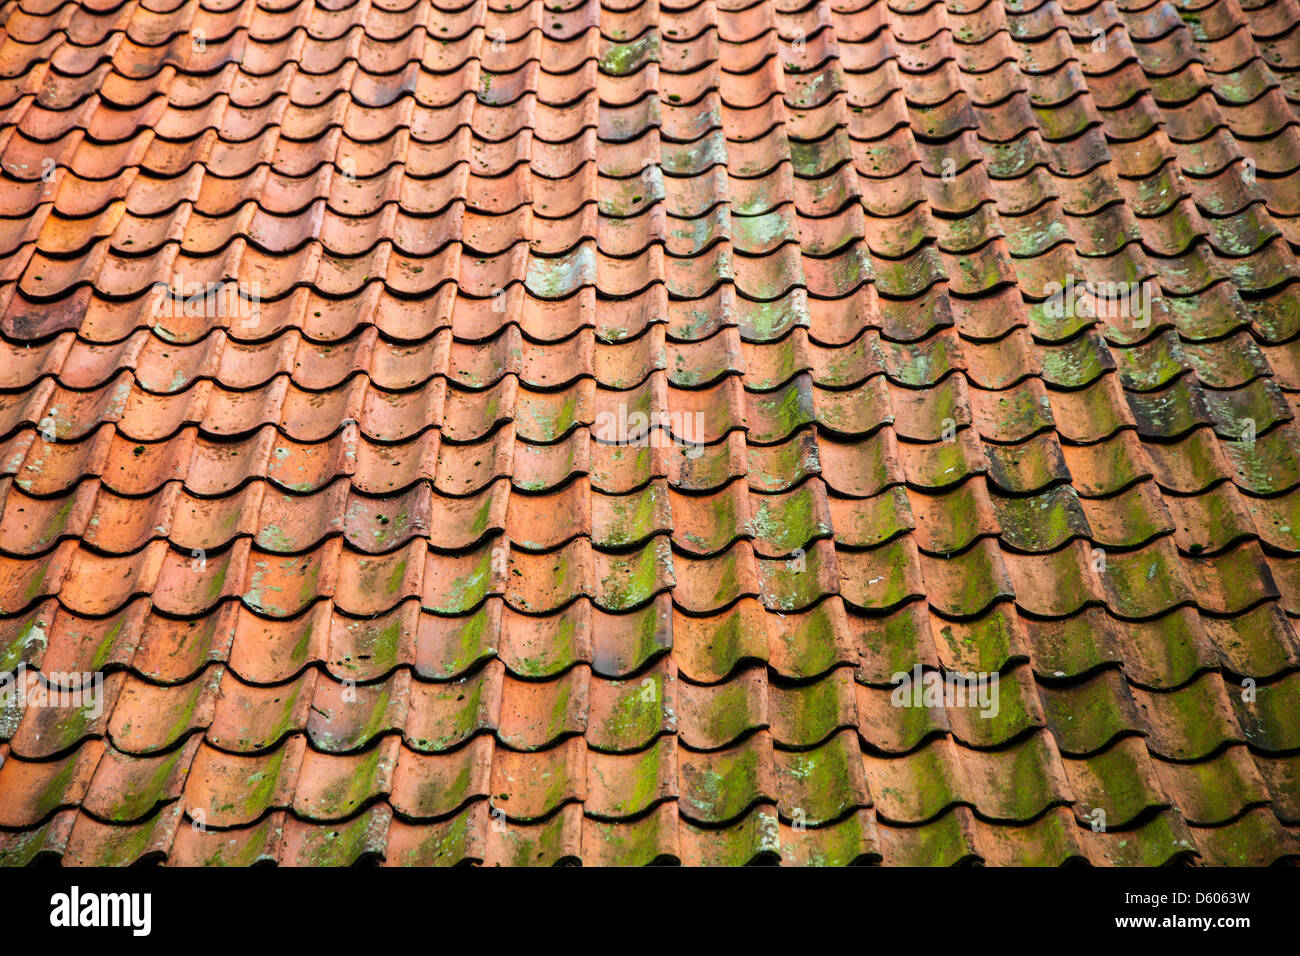 Pitched Roof Clay Roof Tiles Red Sometimes Slightly